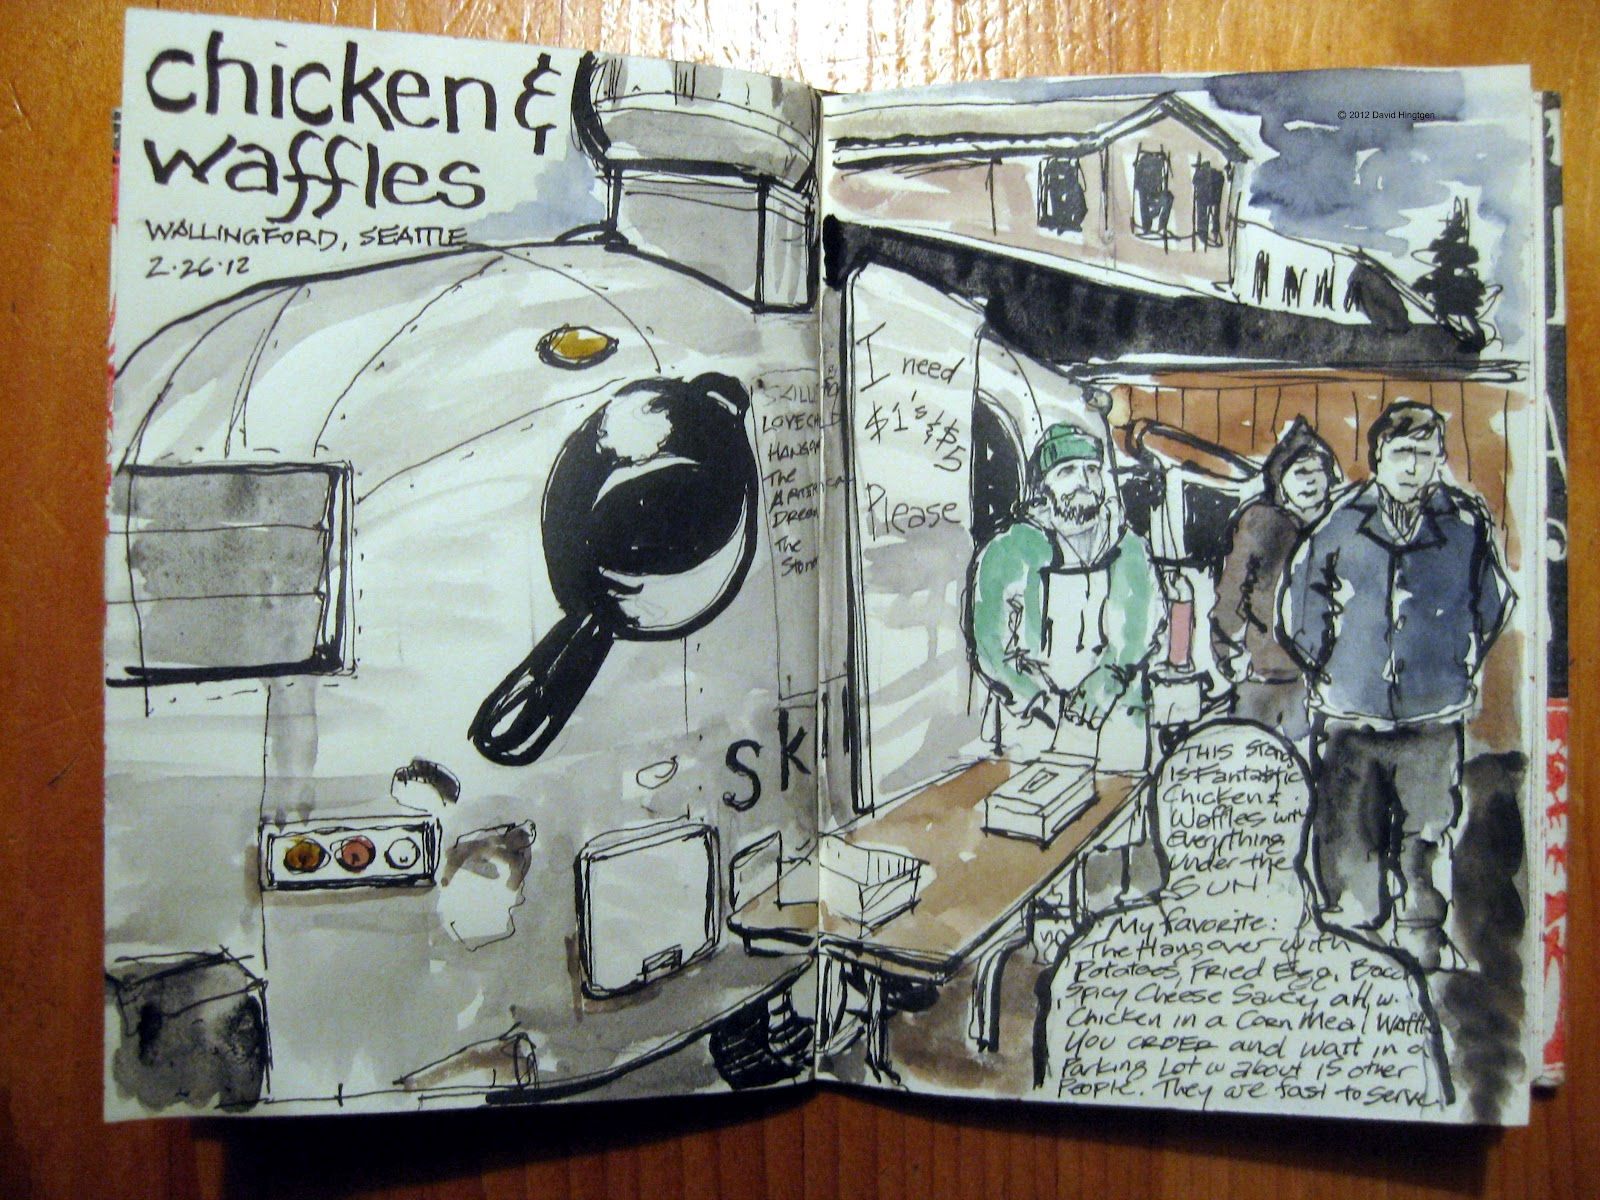 Skillet Food Truck Sketch - Courtesy of David Hingtgen